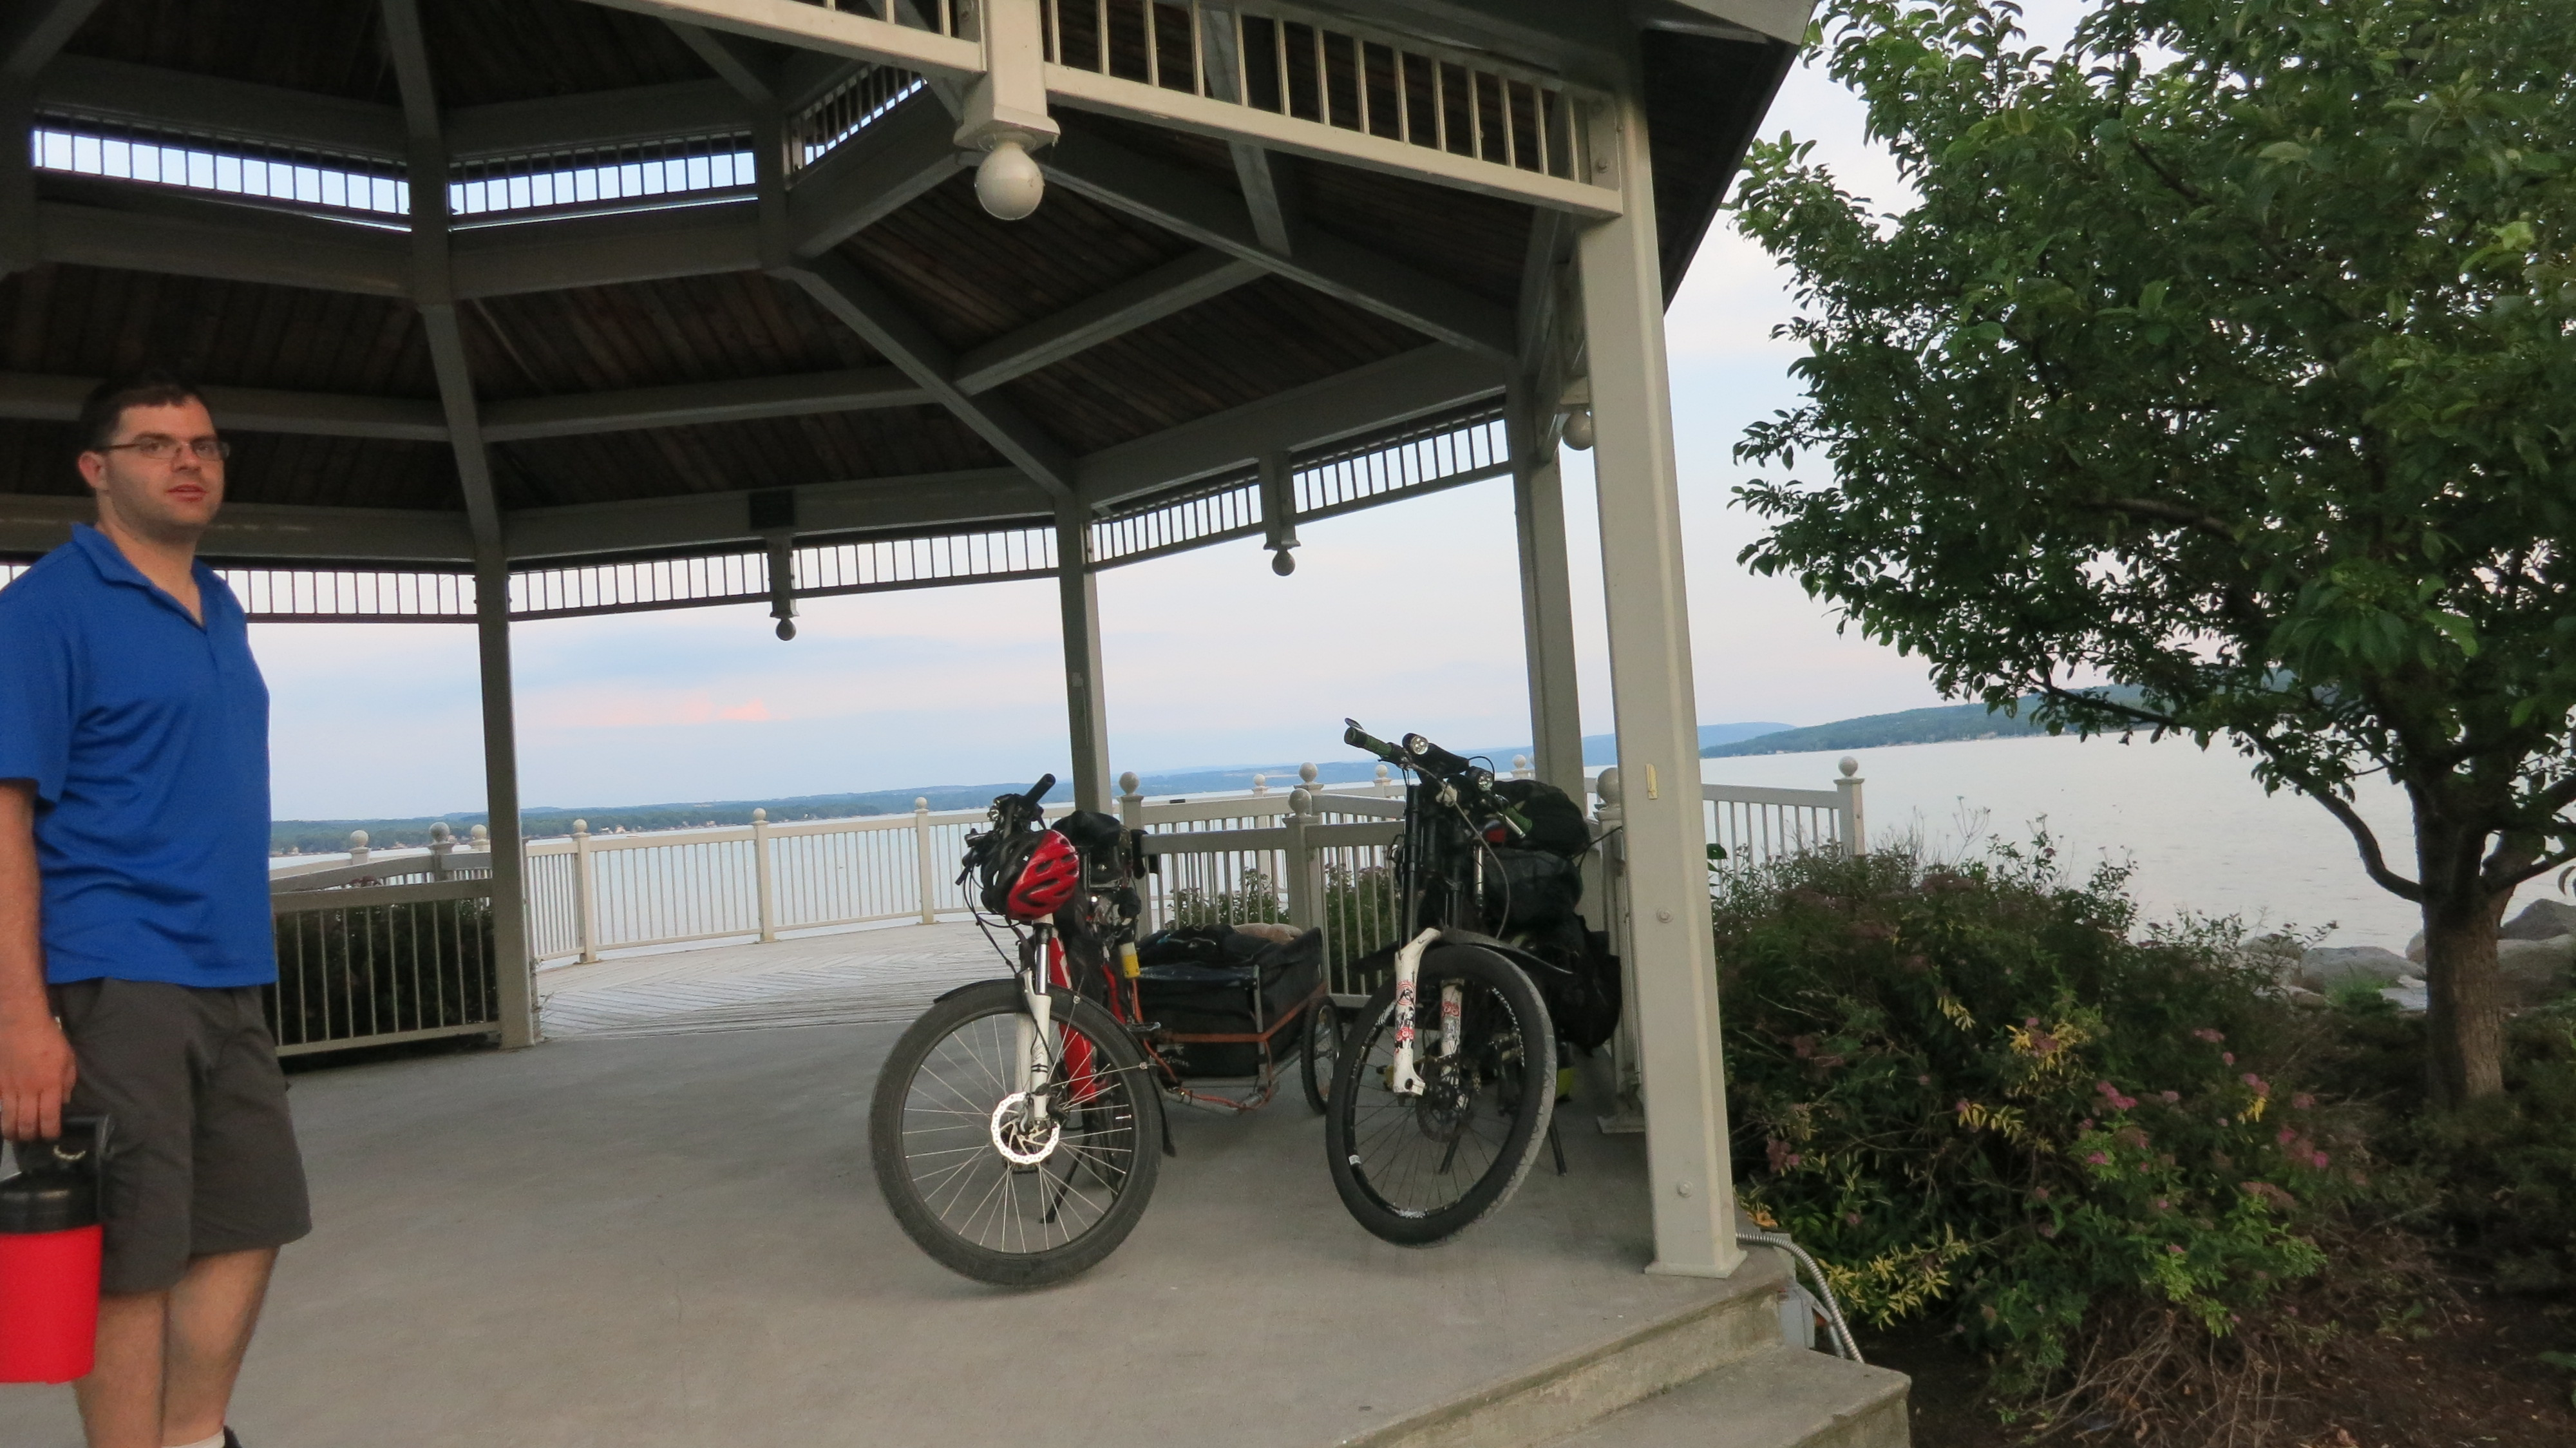 A Short Weekend Electric Bike Tour of the Finger Lakes [VIDEO